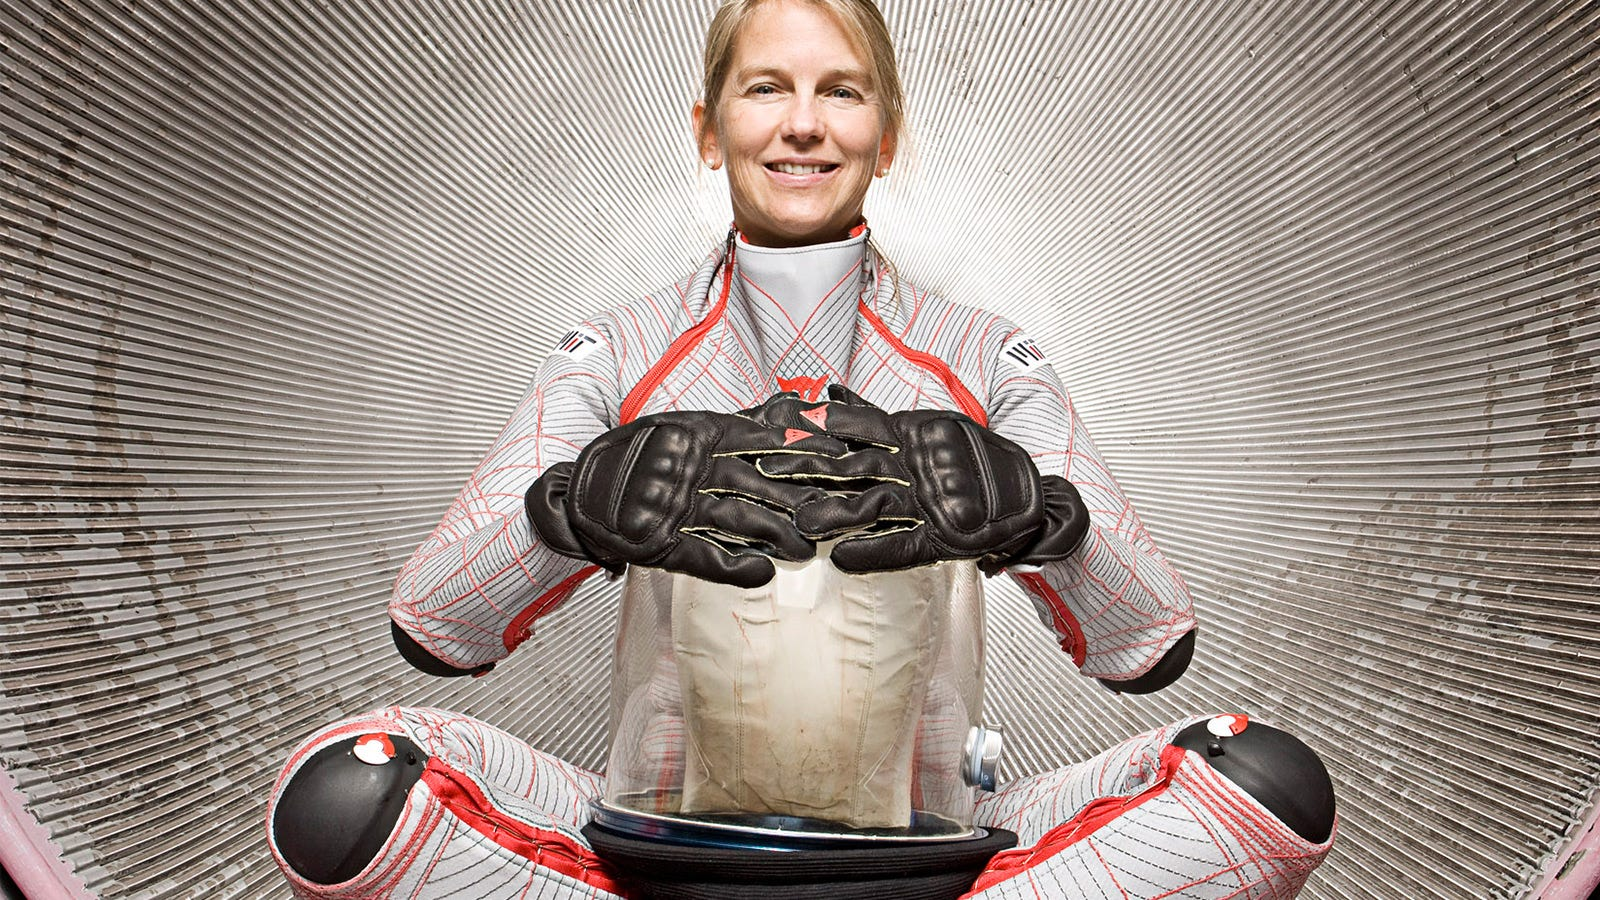 Motorcycle Gear Company Dainese Is Making Space Suits For Mars Mission